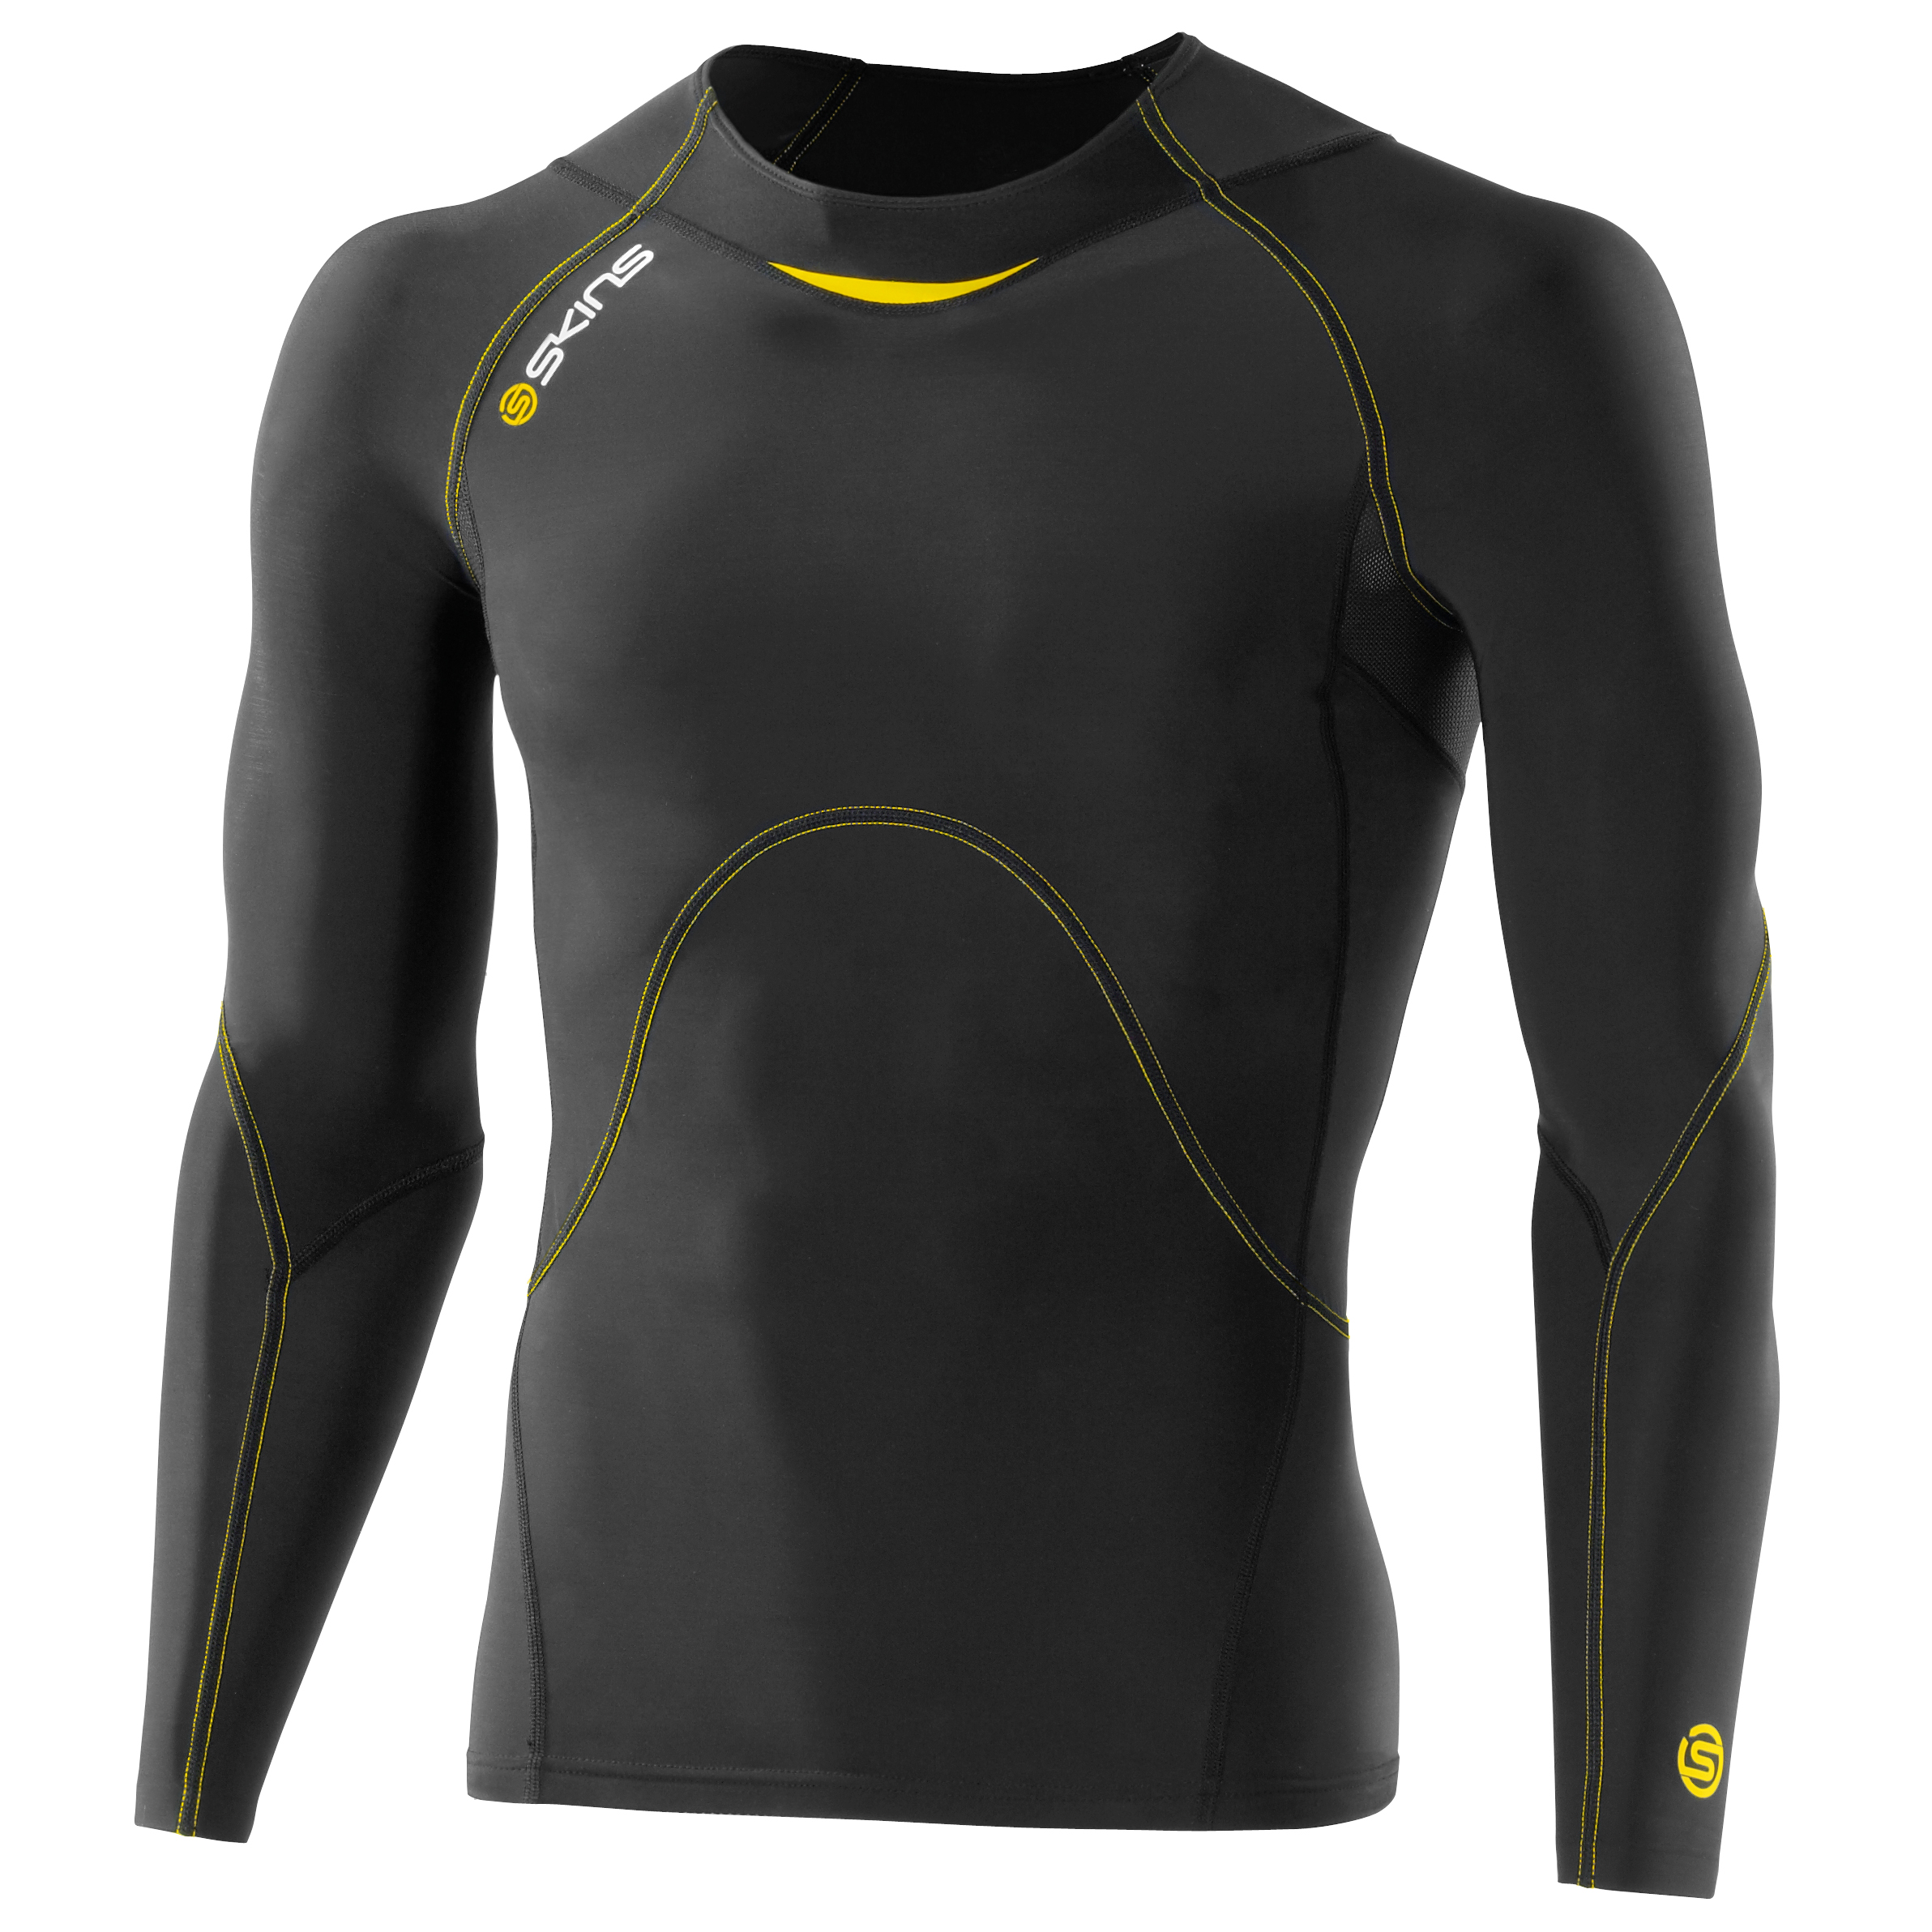 Skins A400 Active Long Sleeve Top - Black/Yellow